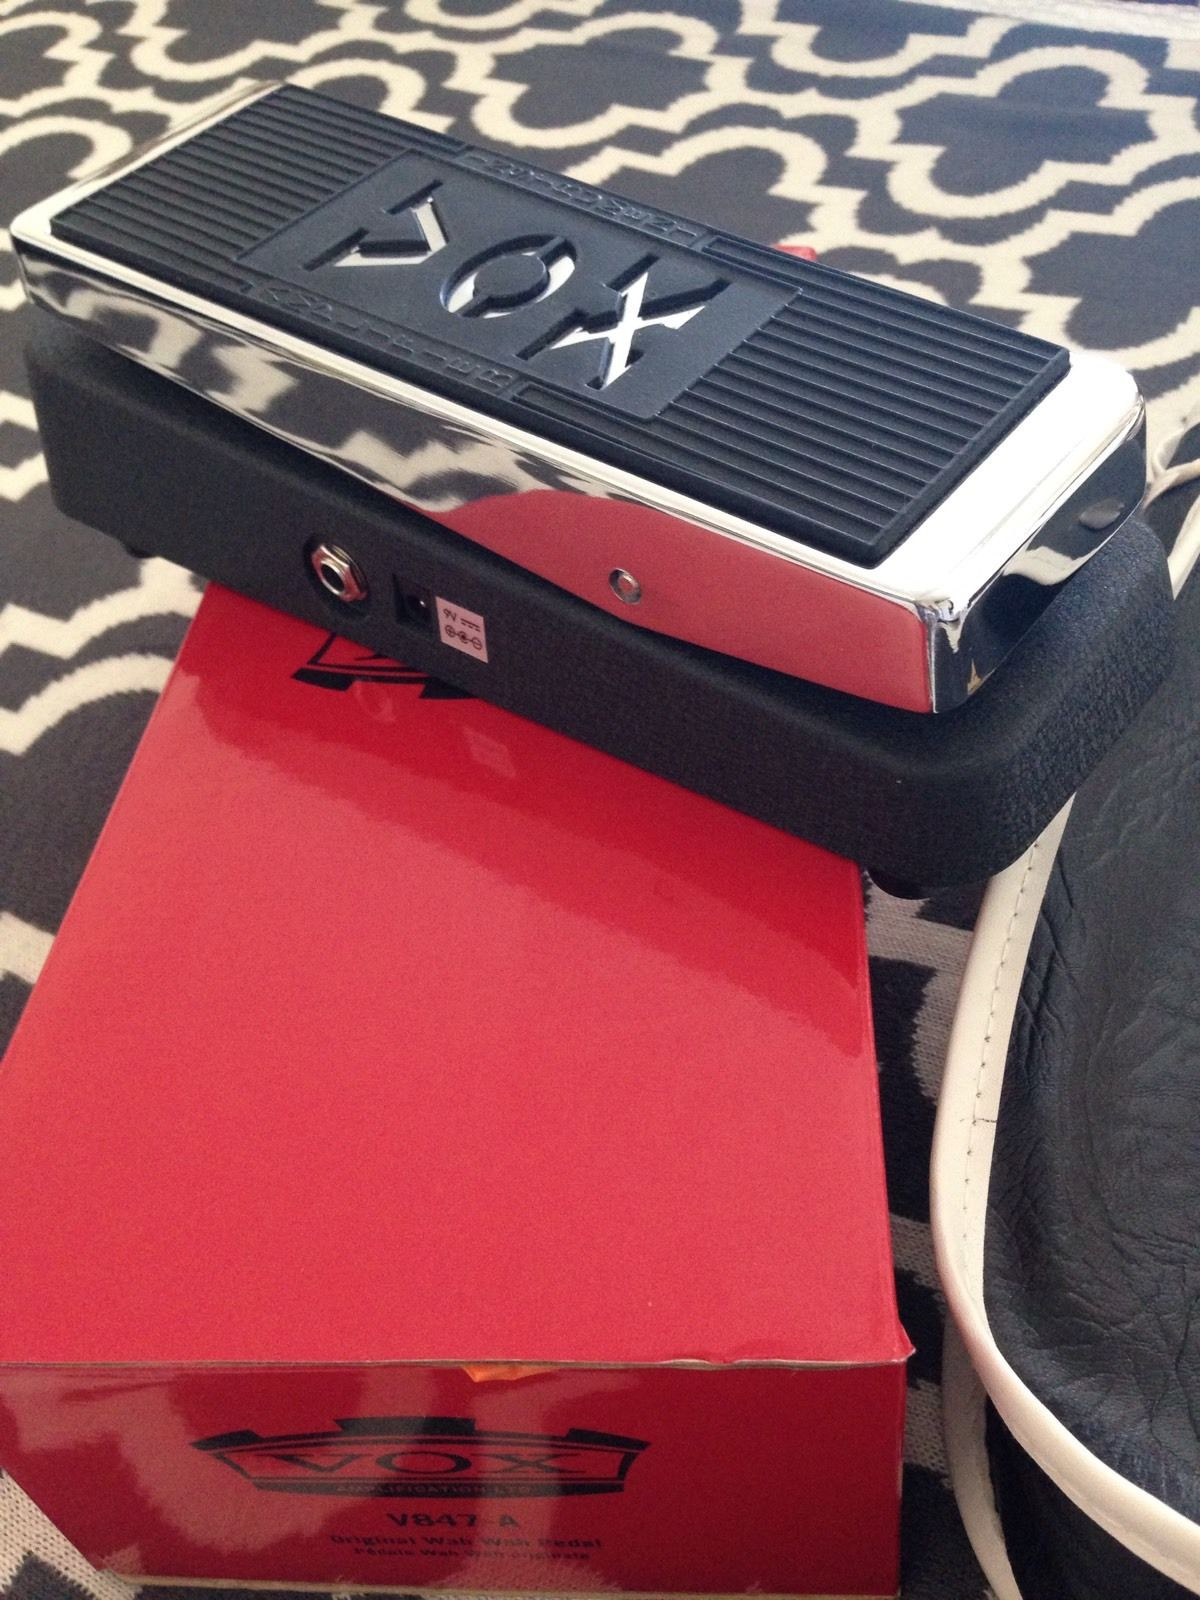 Vox Wah Wah Guitar Effects Pedal